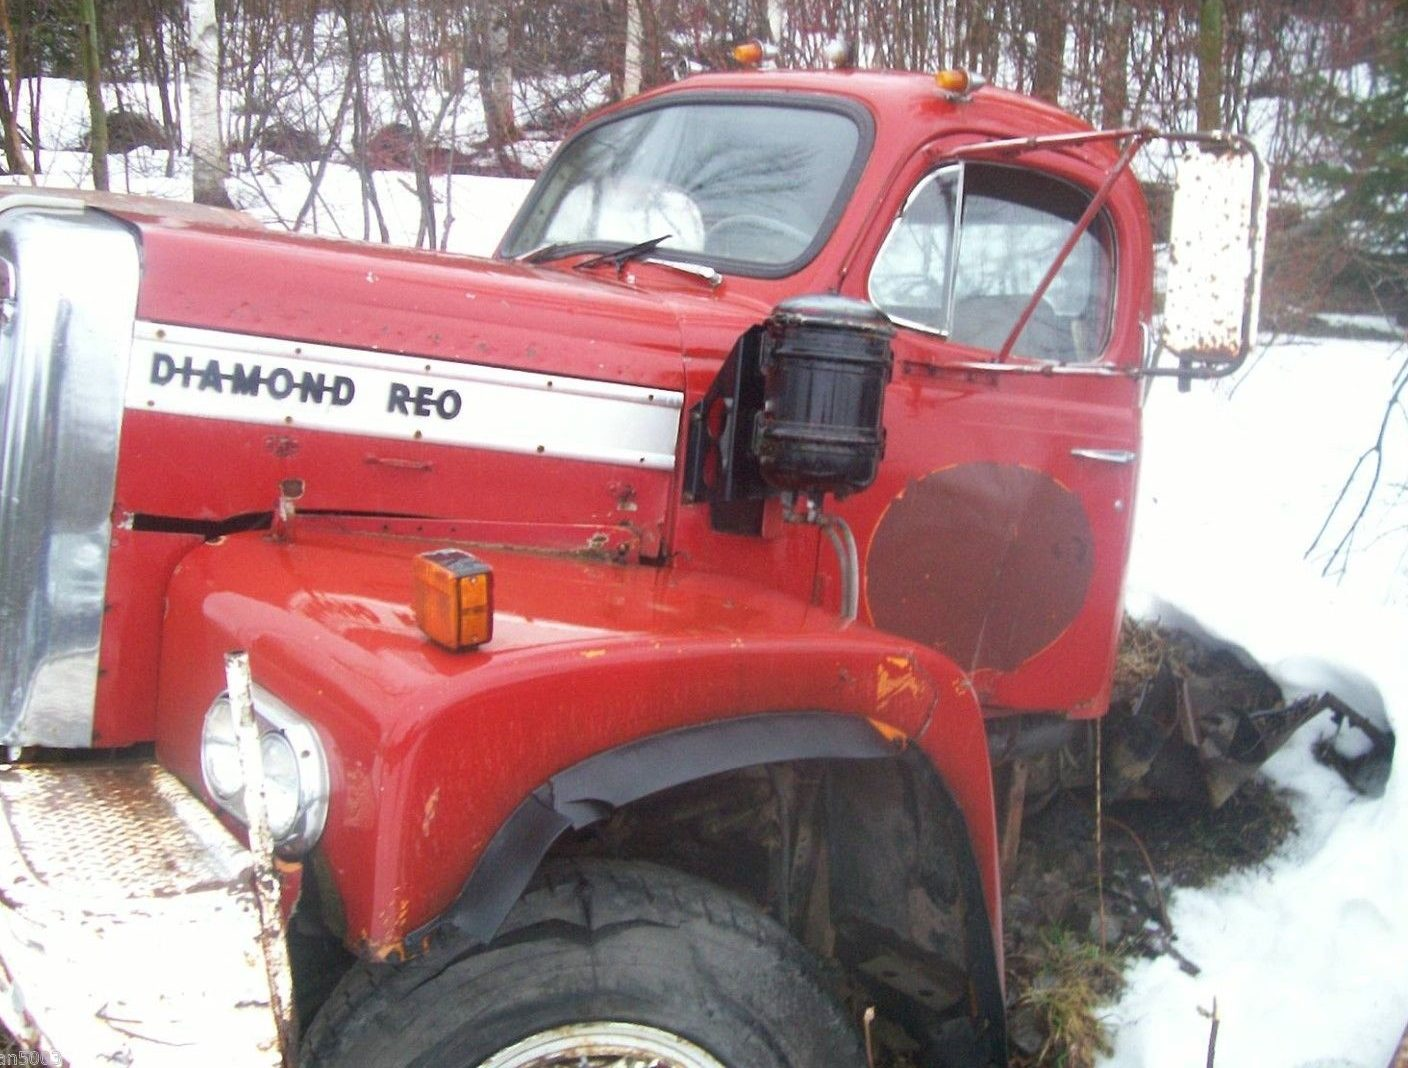 Project Truck Paradise: Yard Finds on eBay